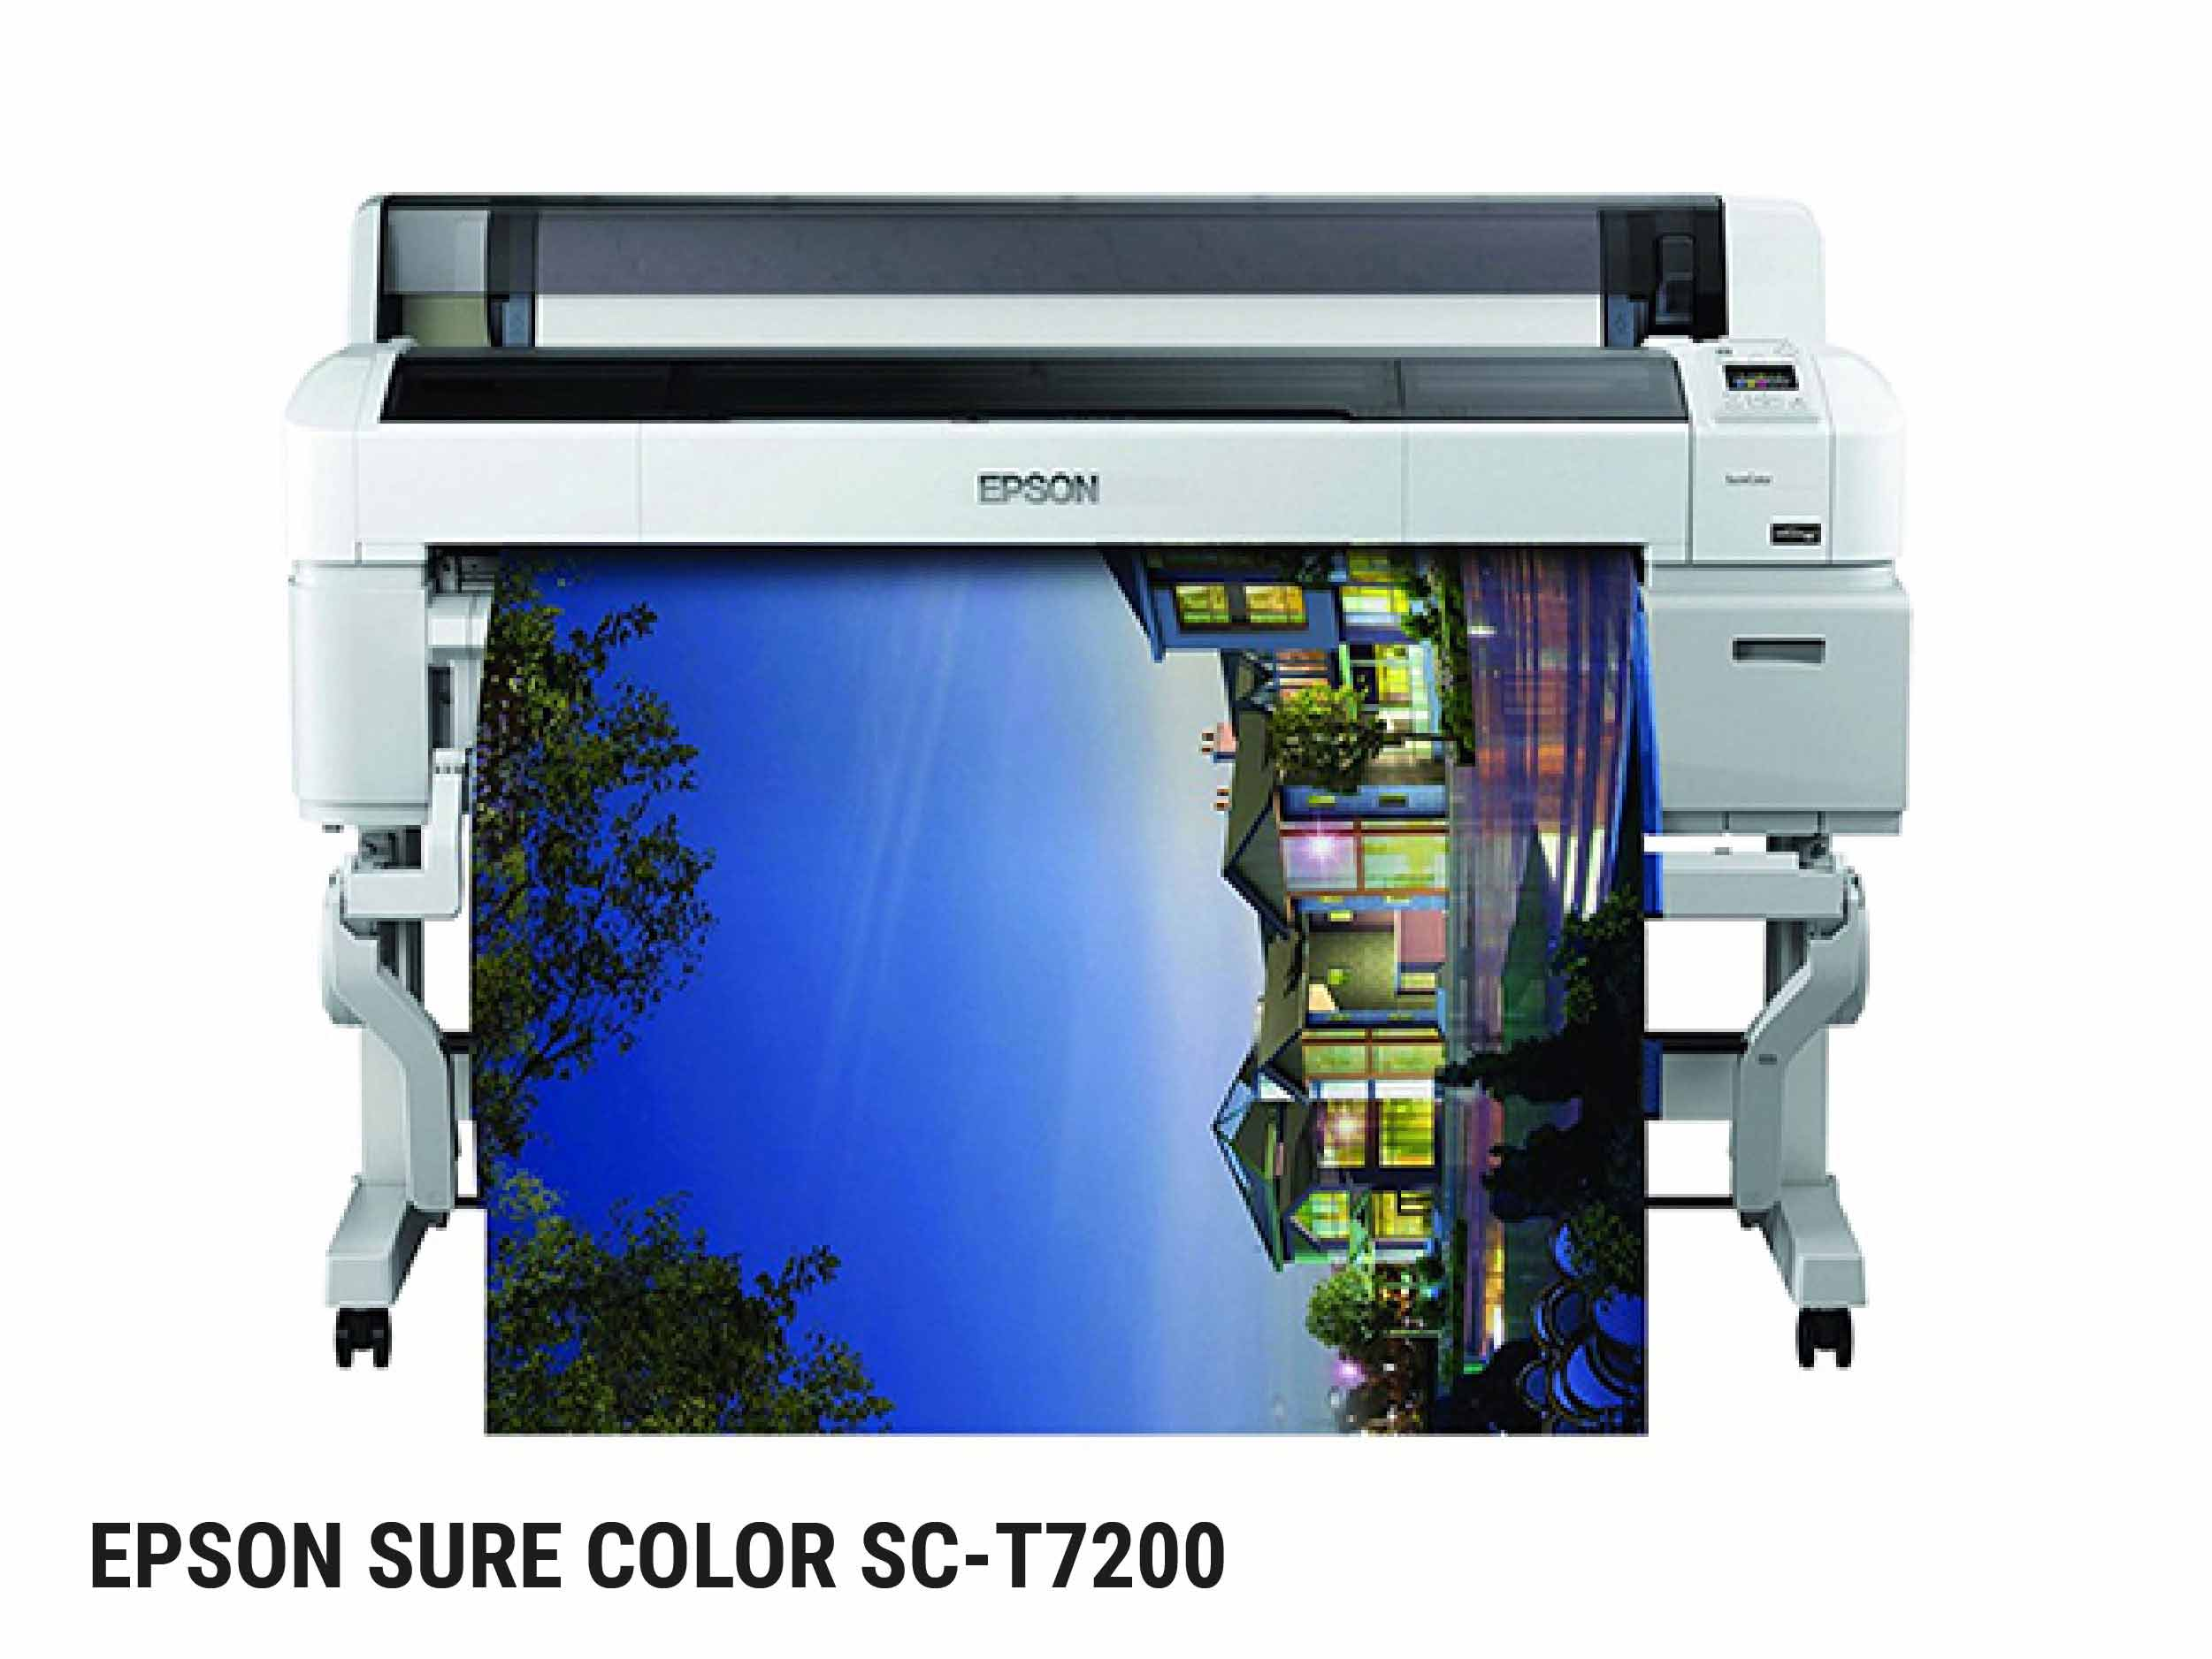 OutsidePrint - Stampa digitale online con Epson Sure Color T7200